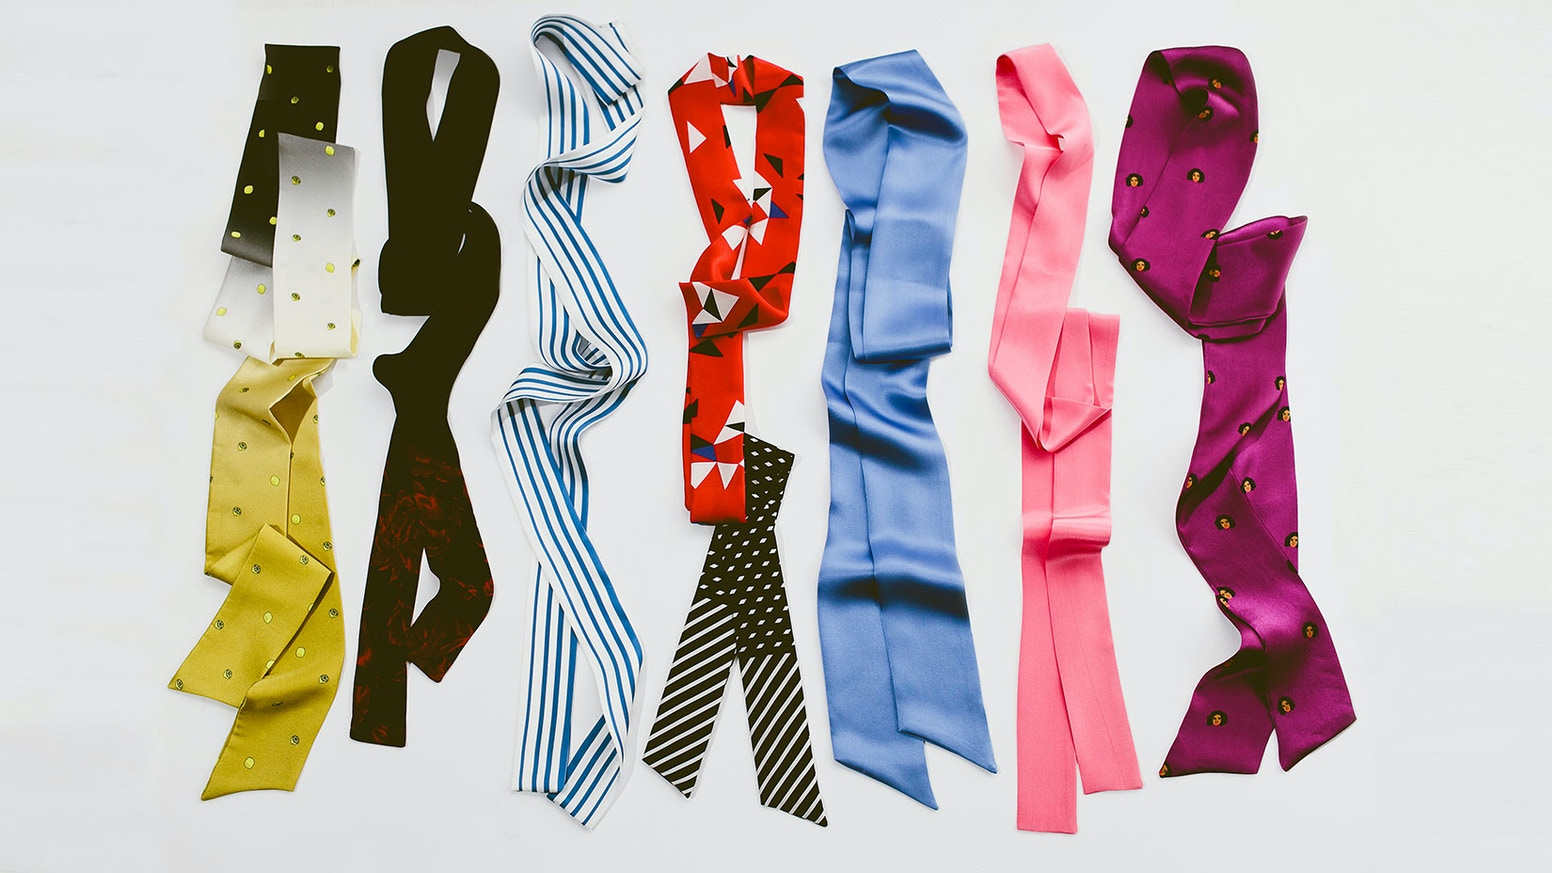 Neckties (aka pussybows) that are inspired by influential women from history and today.